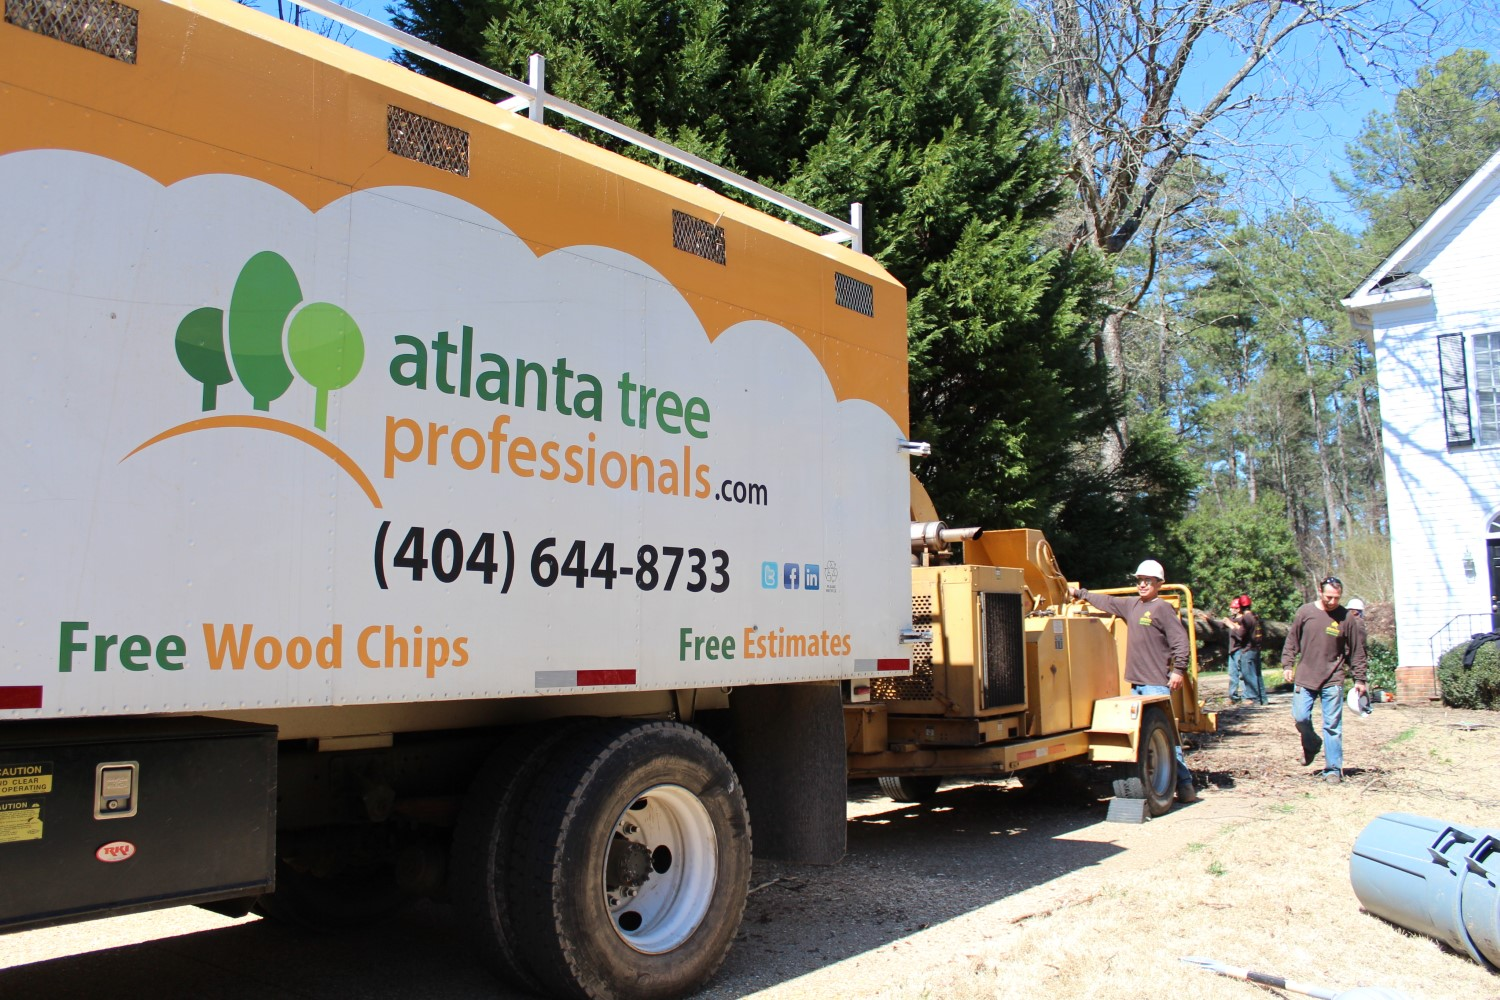 For tree trimming Marietta GA residents call the pros at ATP